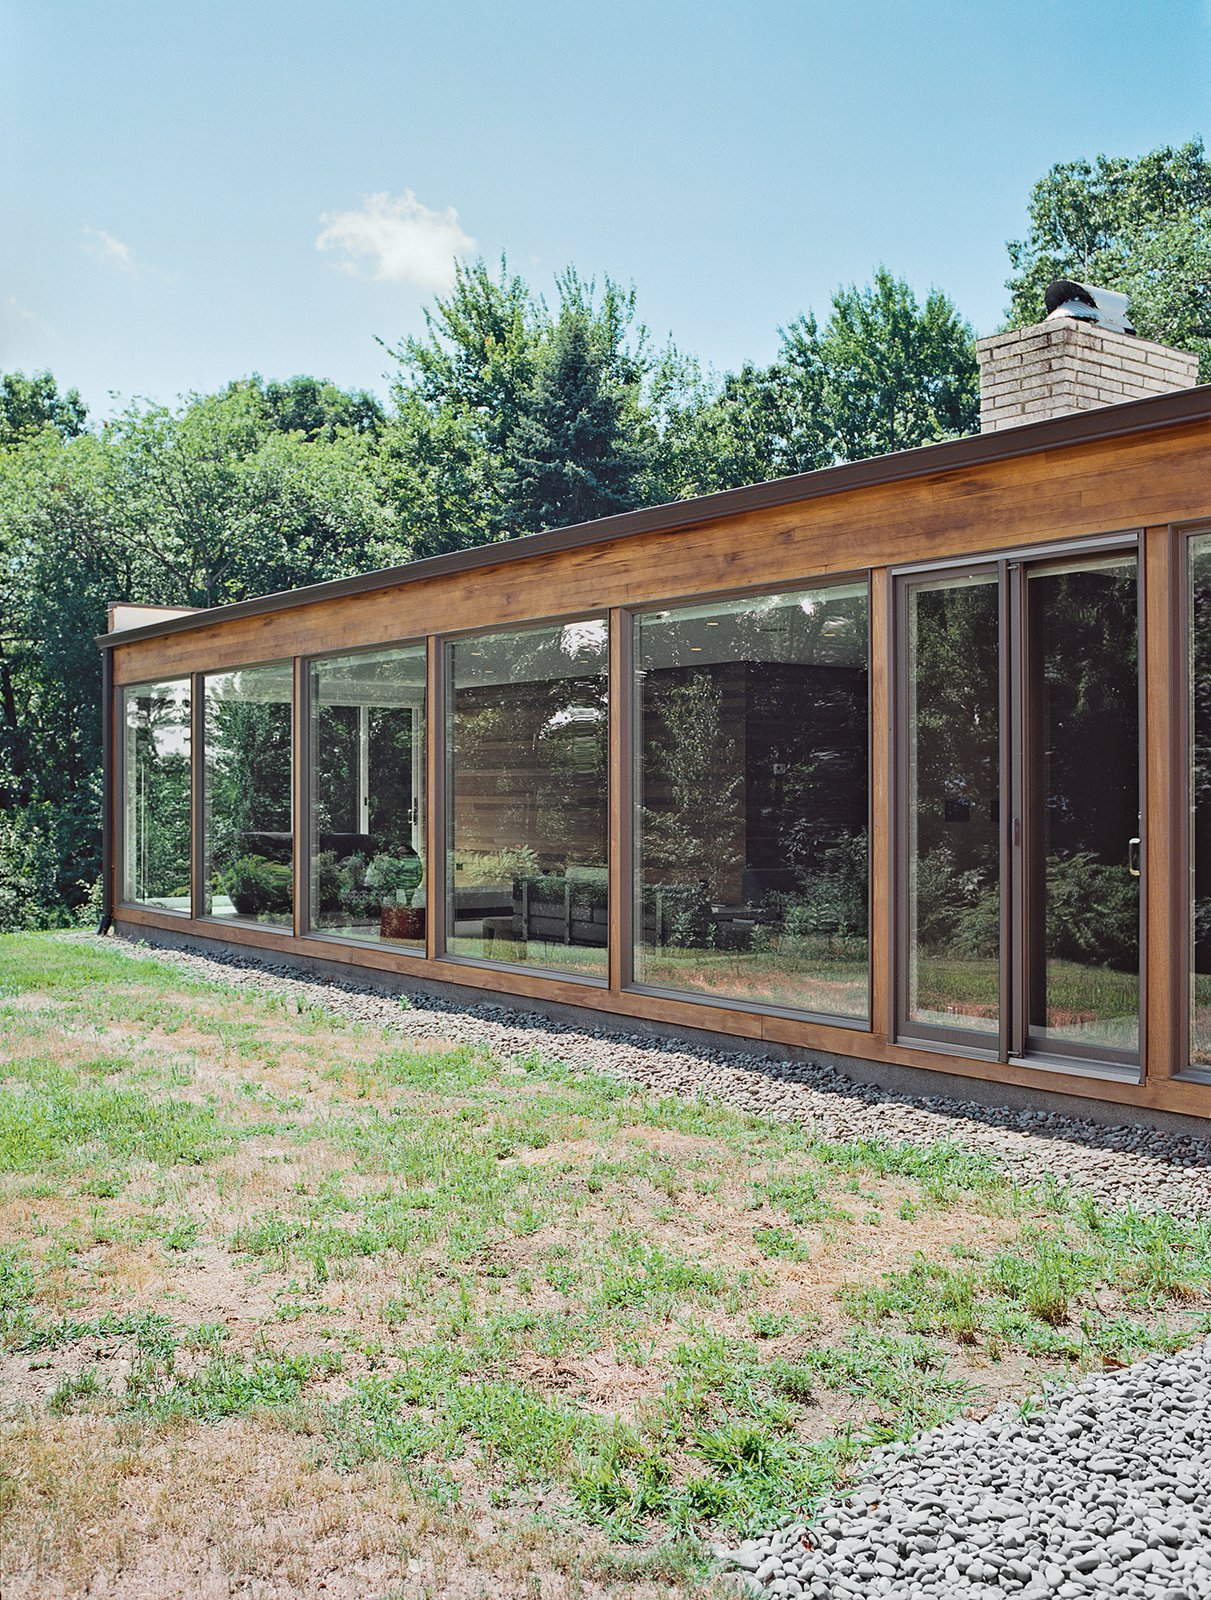 He added floor-to-ceiling windows by Andersen, which allow low winter sunlight to warm the interior in colder months. Tagged: Exterior, Mid-Century Building Type, Flat RoofLine, Wood Siding Material, and House.  Renovations by Annette Luikart from The Midcentury Spirit is Alive and Well in This Hudson Valley Escape